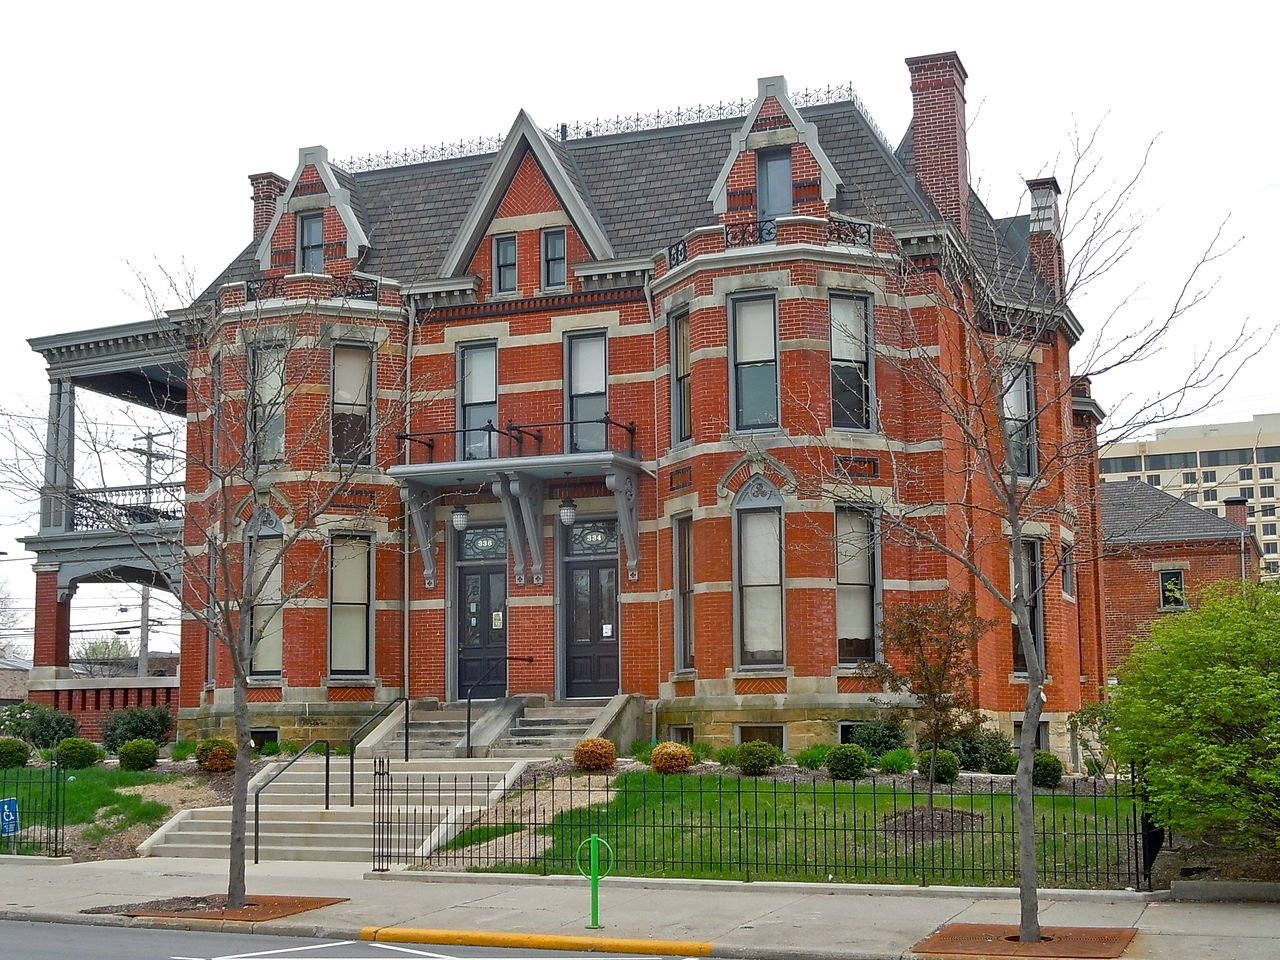 The McCulloch-Weatherhogg Double House is one of the more striking buildings in Fort Wayne. It was built in 1881 and is today the home of the United Way of Allen County.